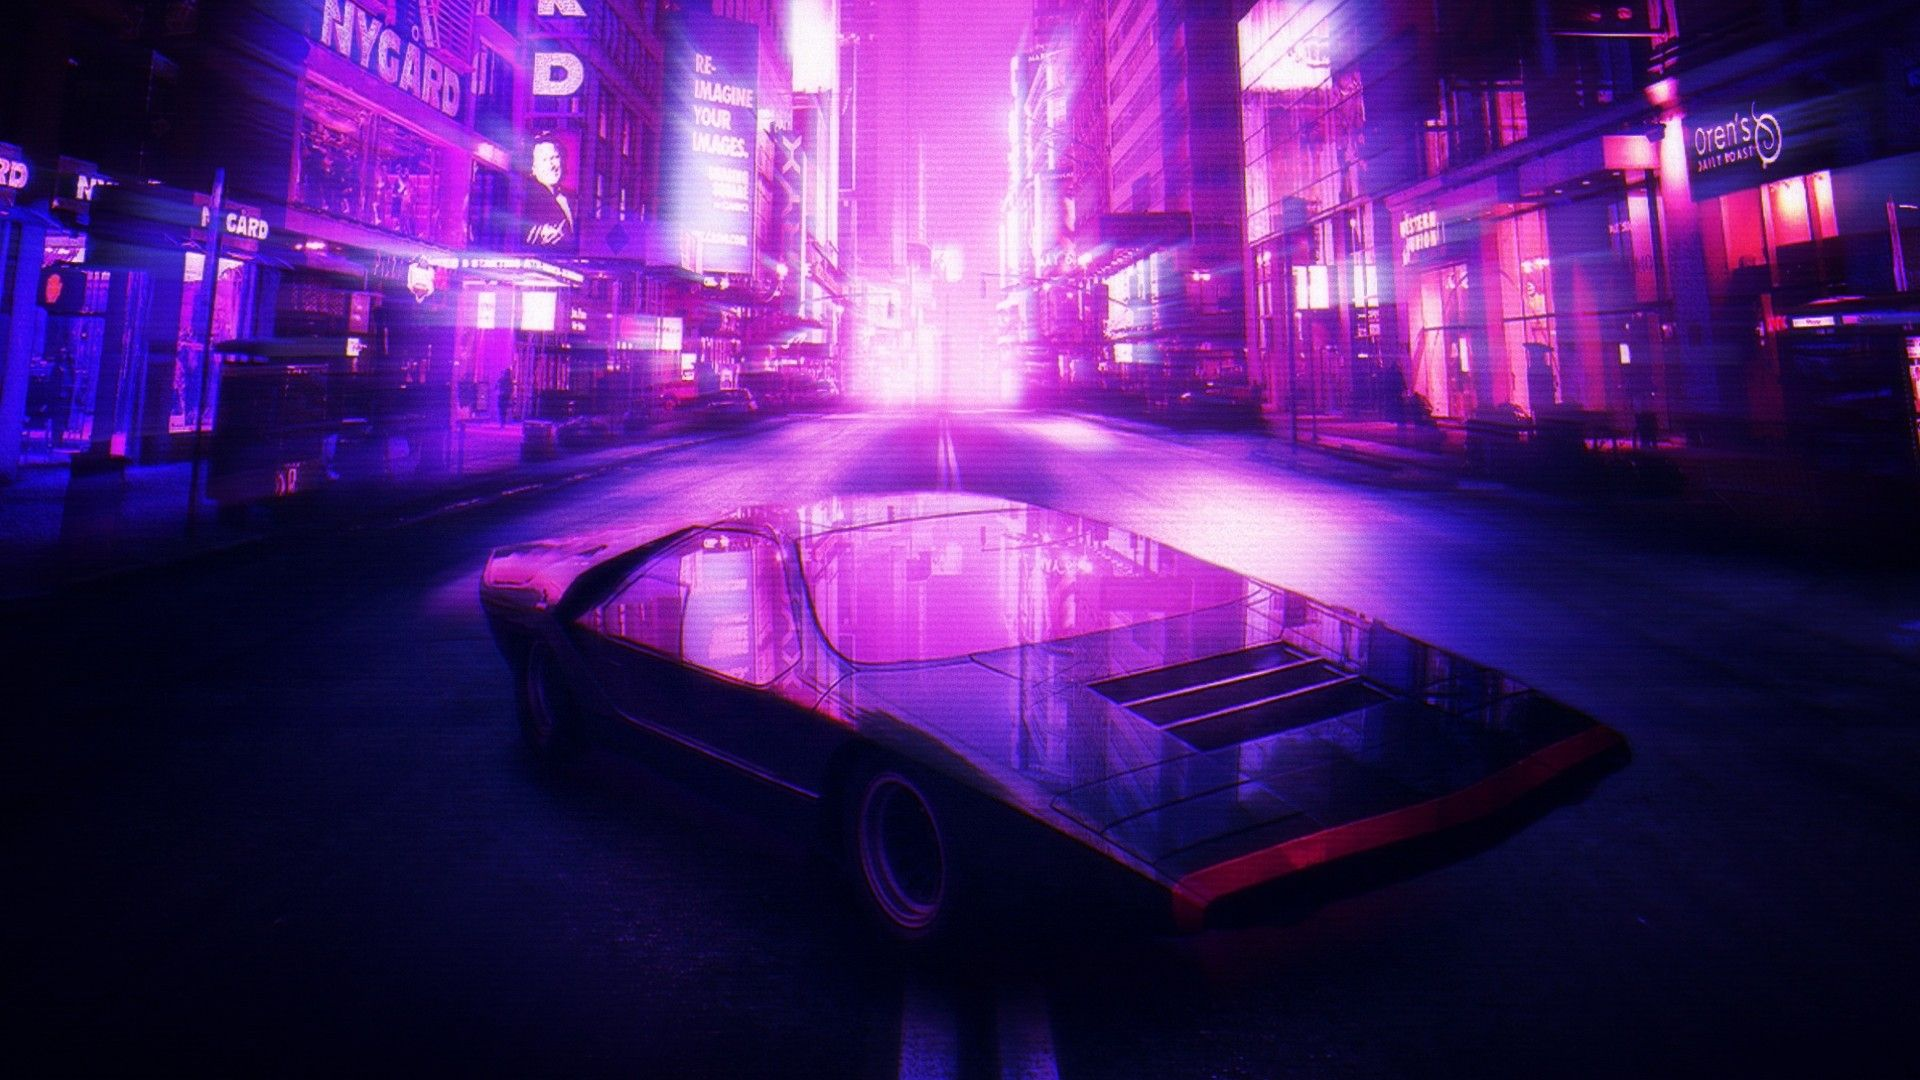 Retro Synthwave 4k Wallpapers - Wallpaper Cave